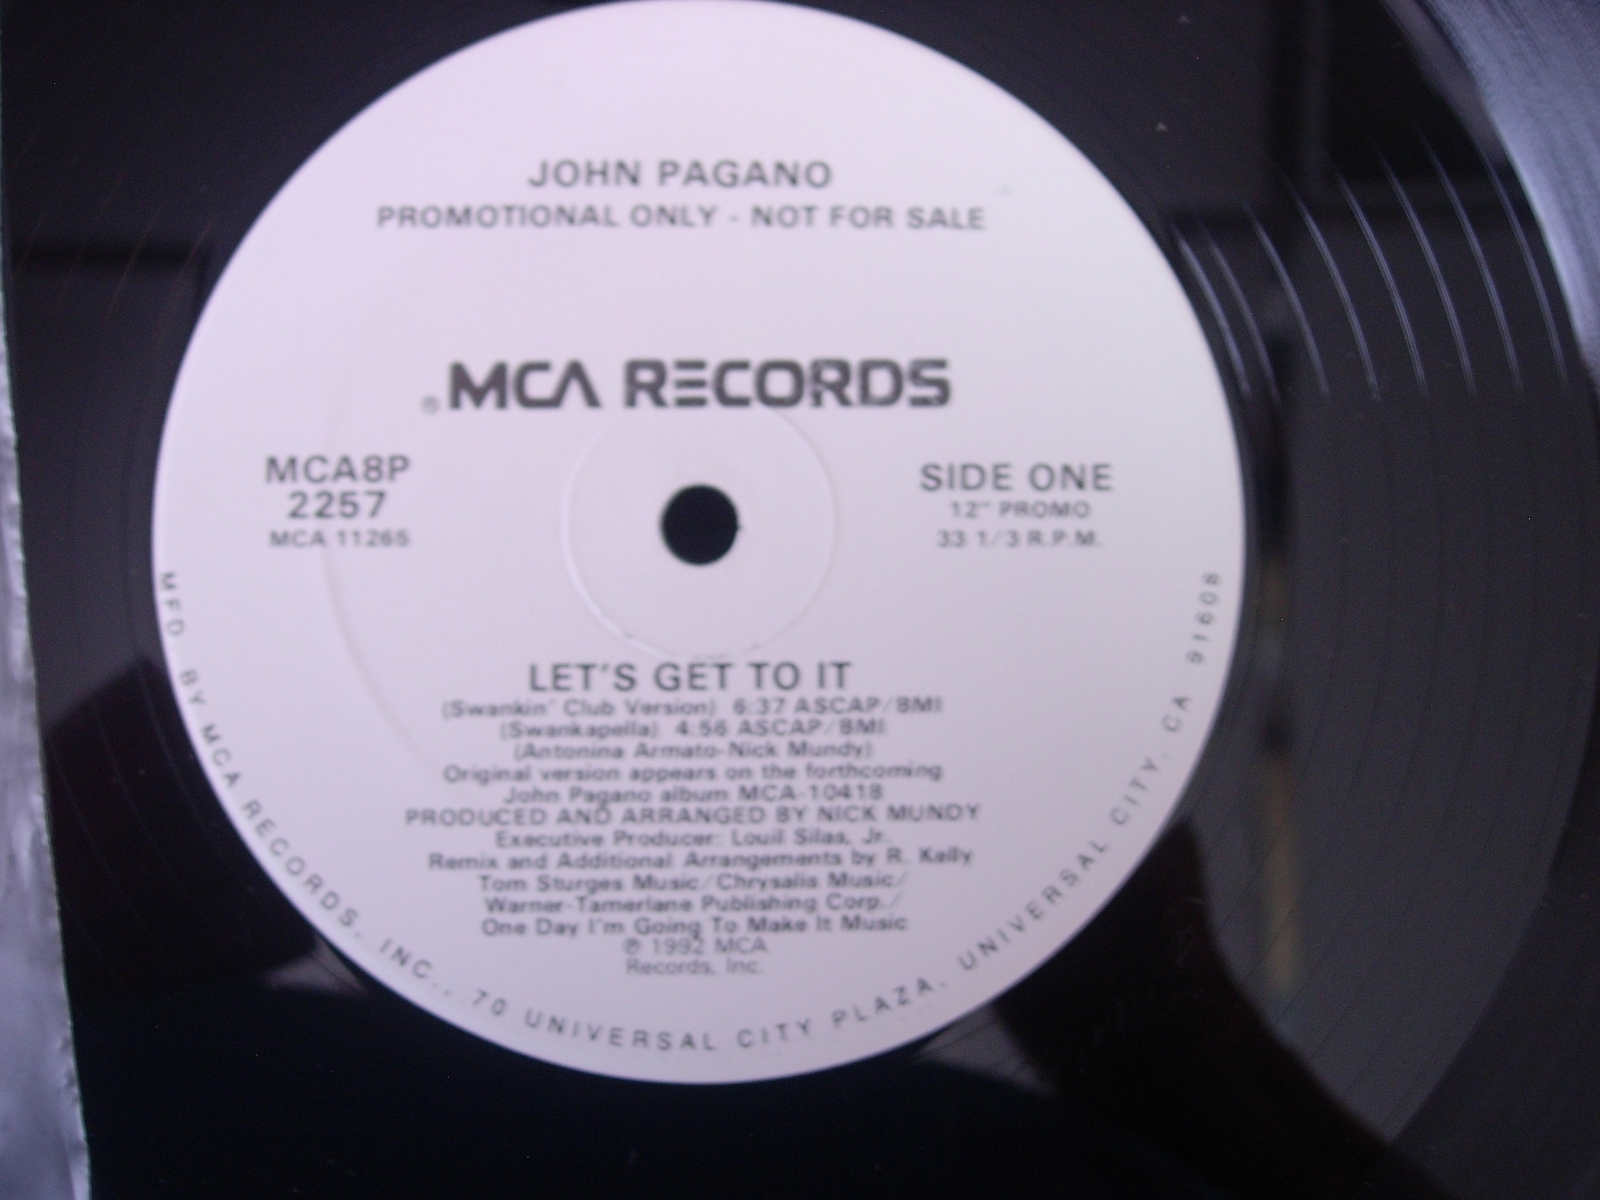 John Pagano - Let's Get To It - MCA Records MCAA8P 2257 - PROMO